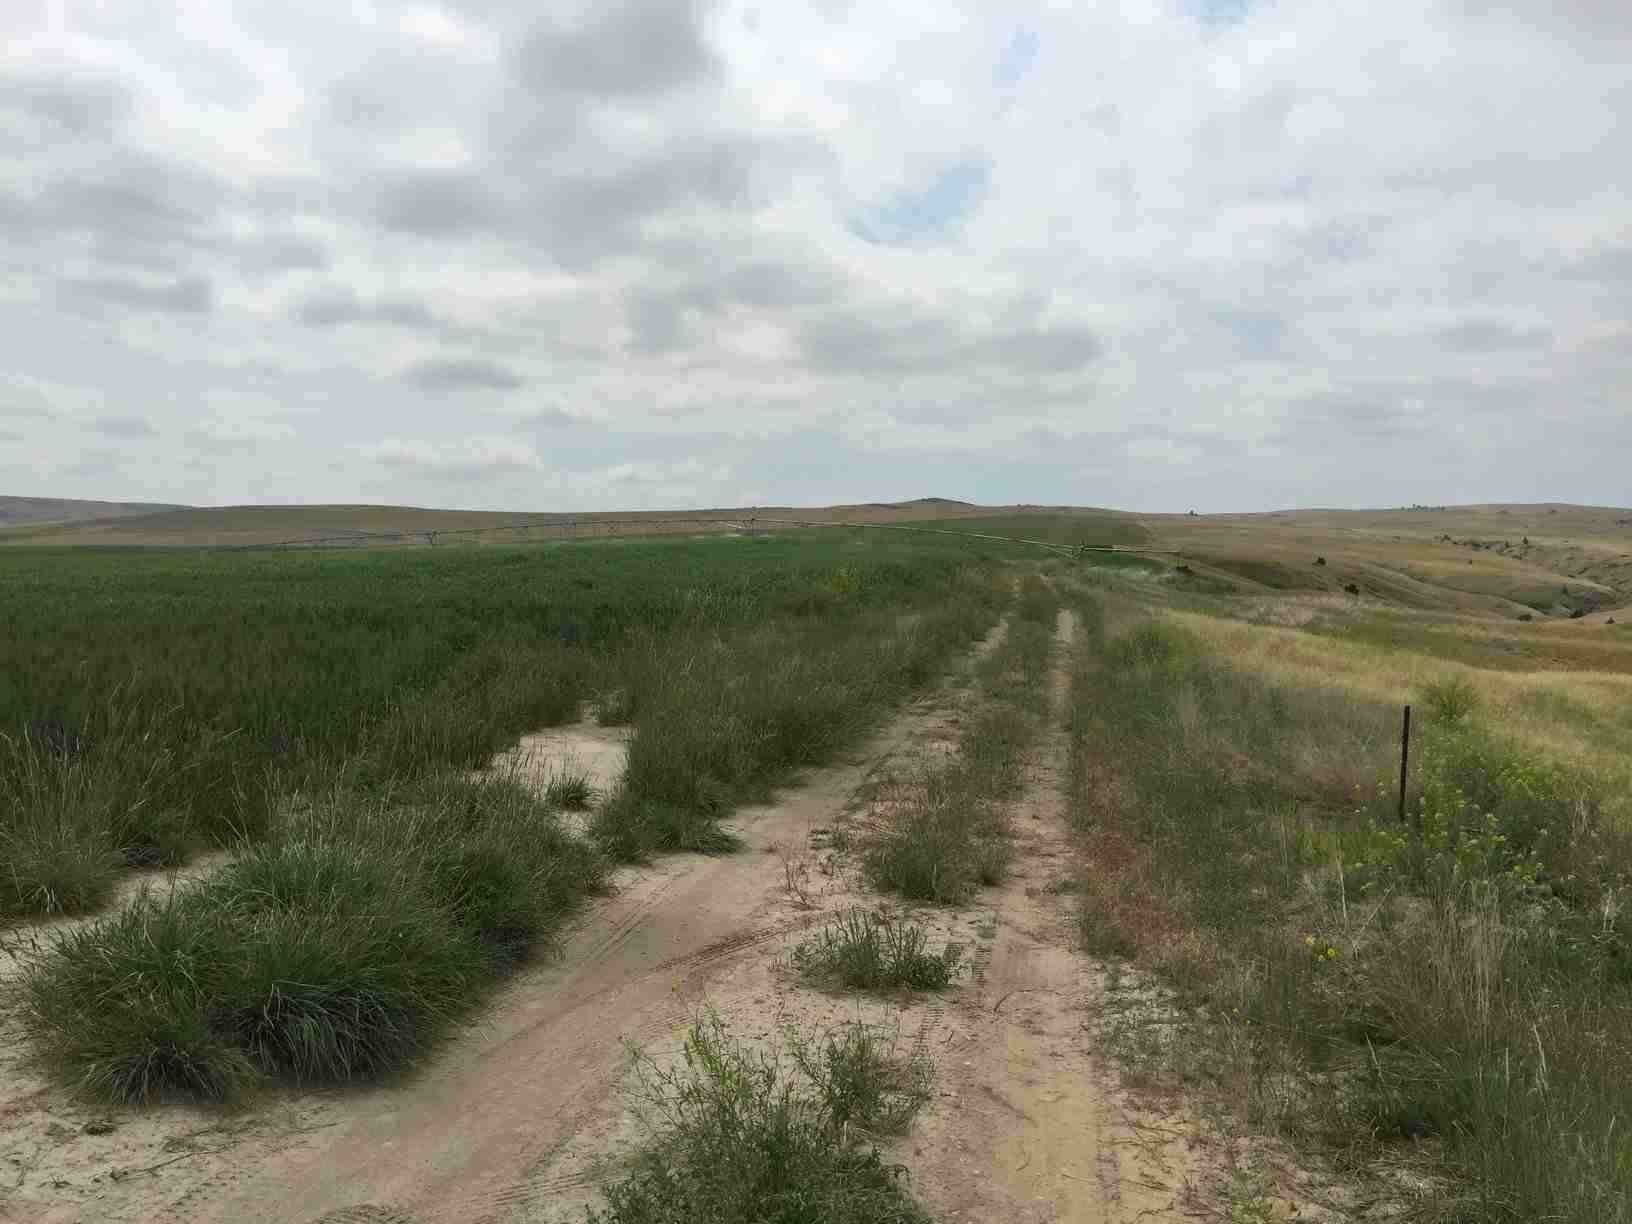 Pea field where Fitzpatrick's vehicle was found (MTN News photo)